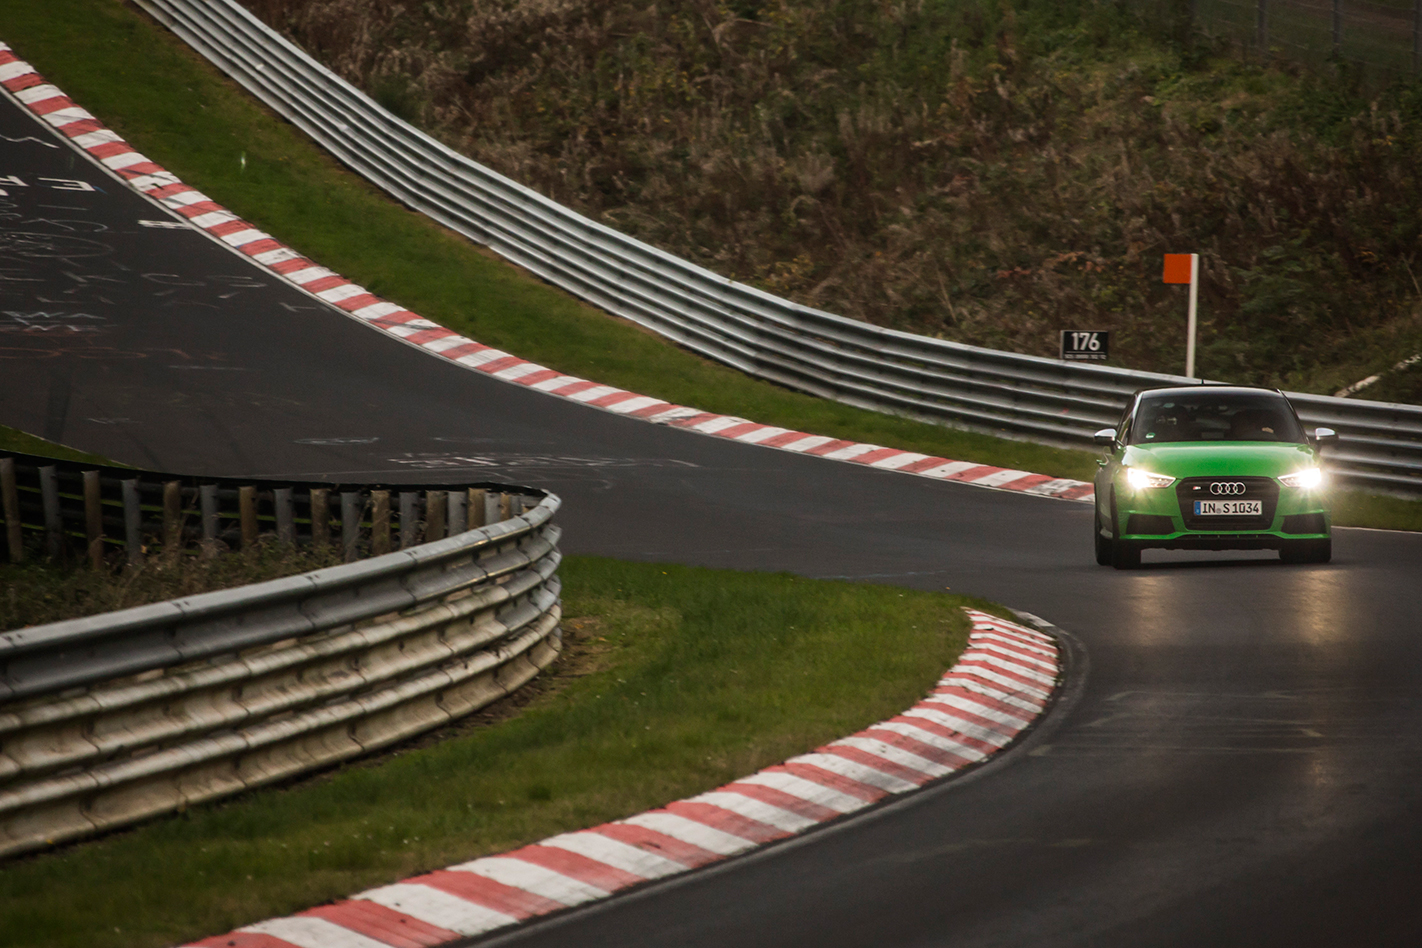 Audi S1 at the Nurburgring